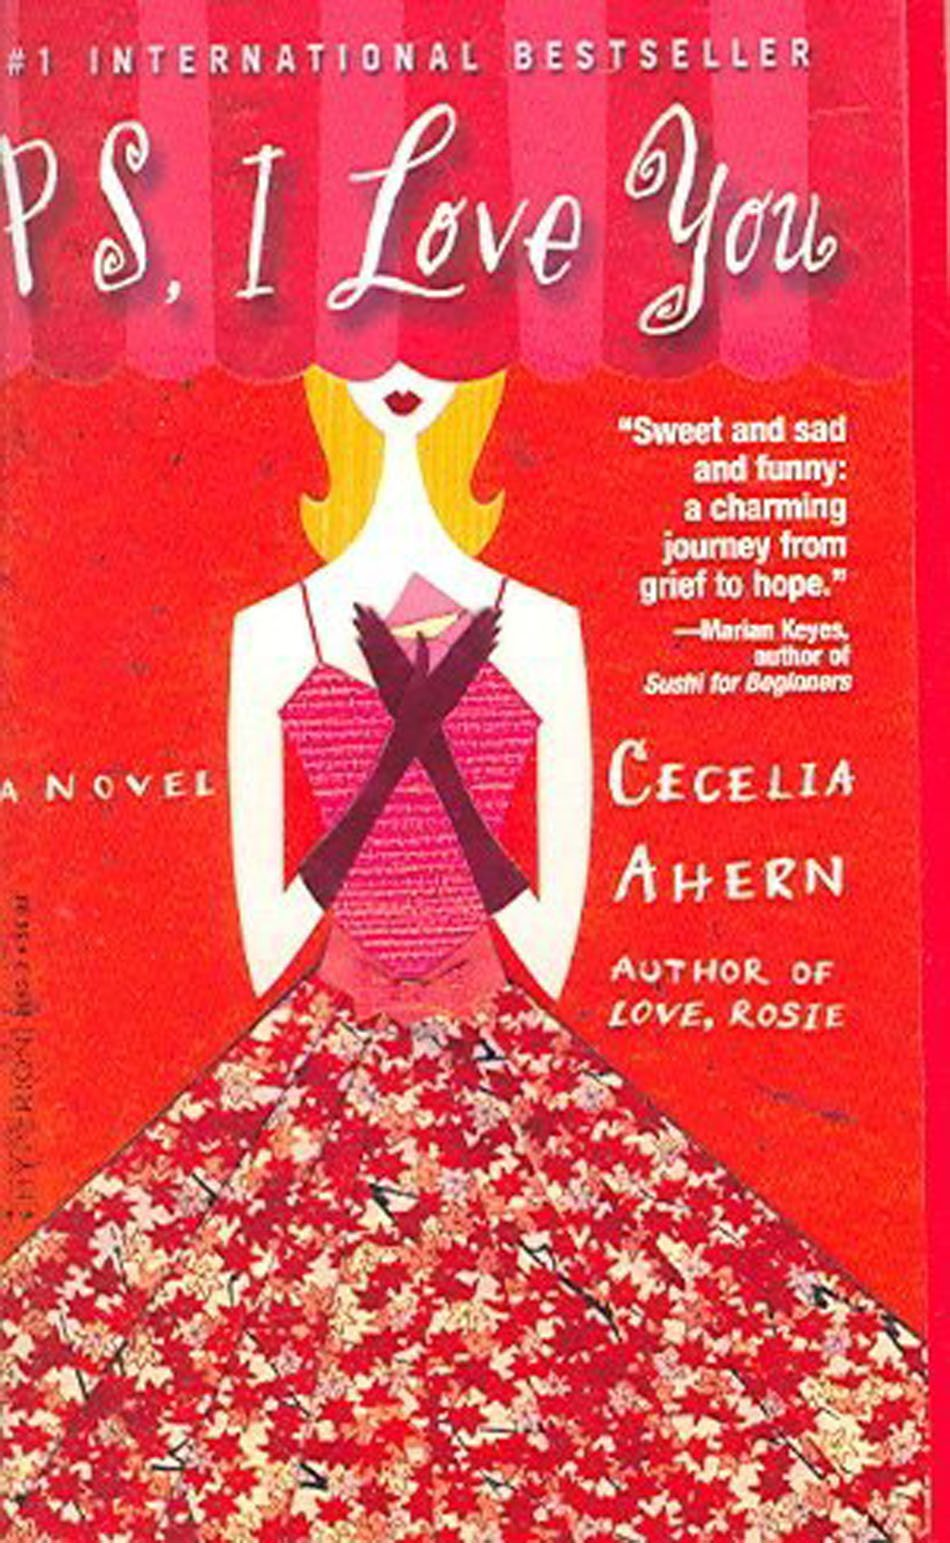 PS I love you by cecelia ahern.jpg